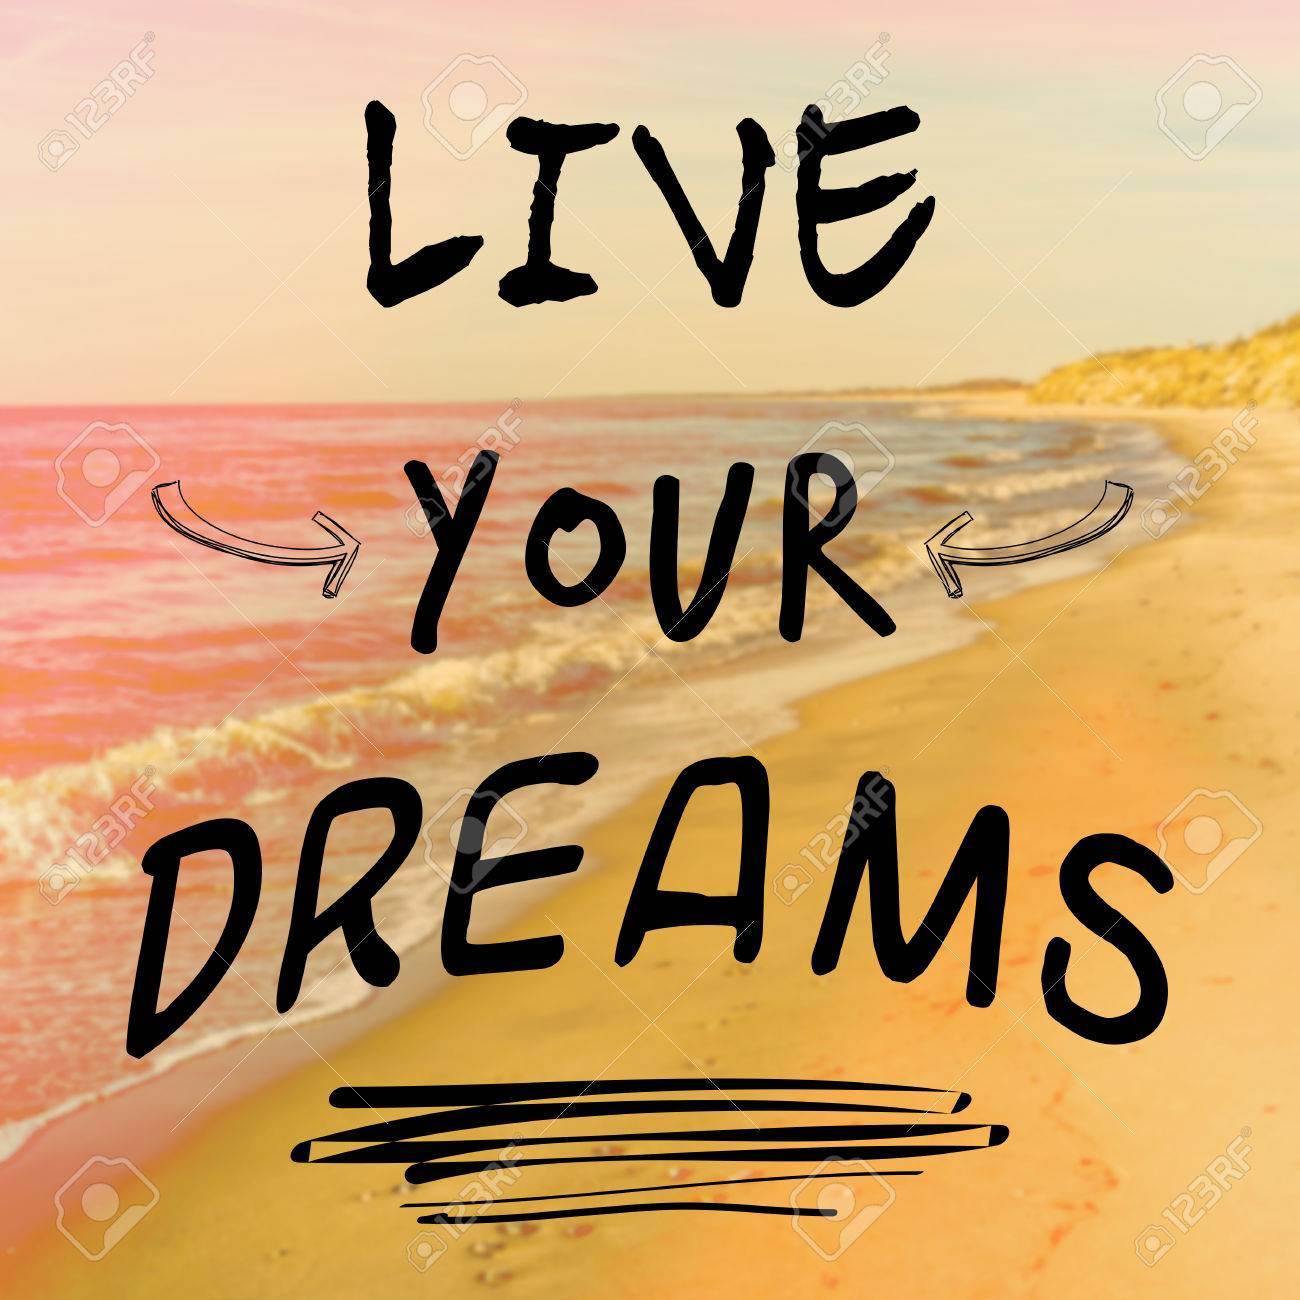 Motivational Quote With Phrase Live Your Dreams On Background With Sea And  Sand Stock Photo